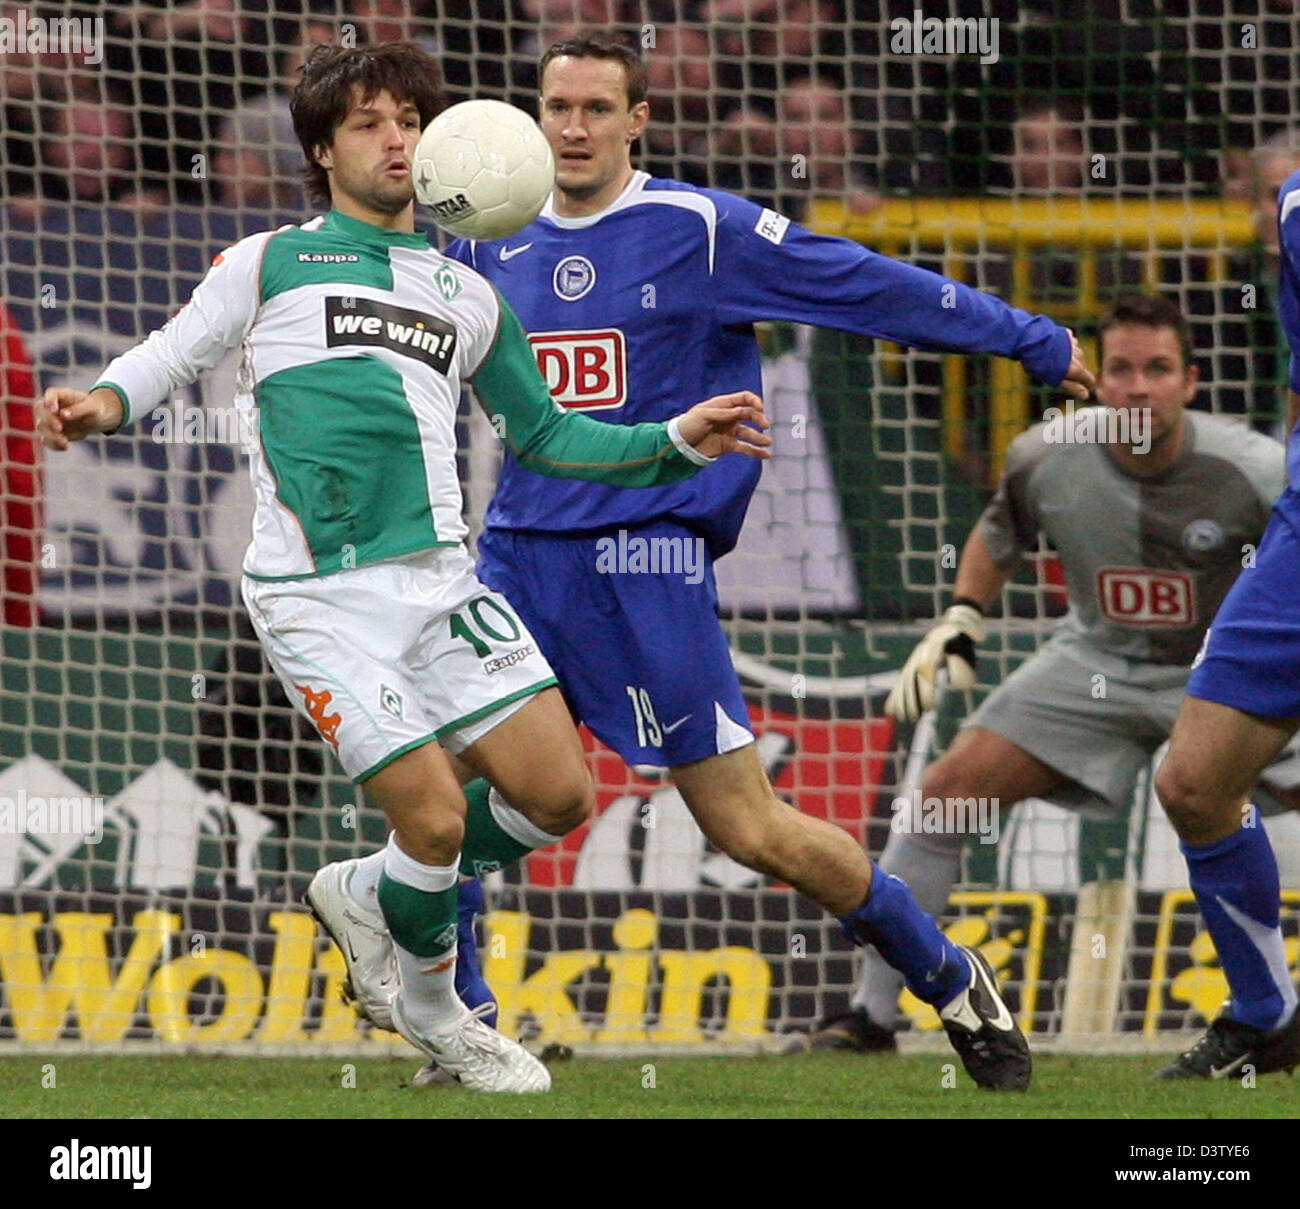 Diego (L) of Bremen beautifully gets in possession of the ball  before Berlin's Andreas Schmidt (R) during the - Stock Image